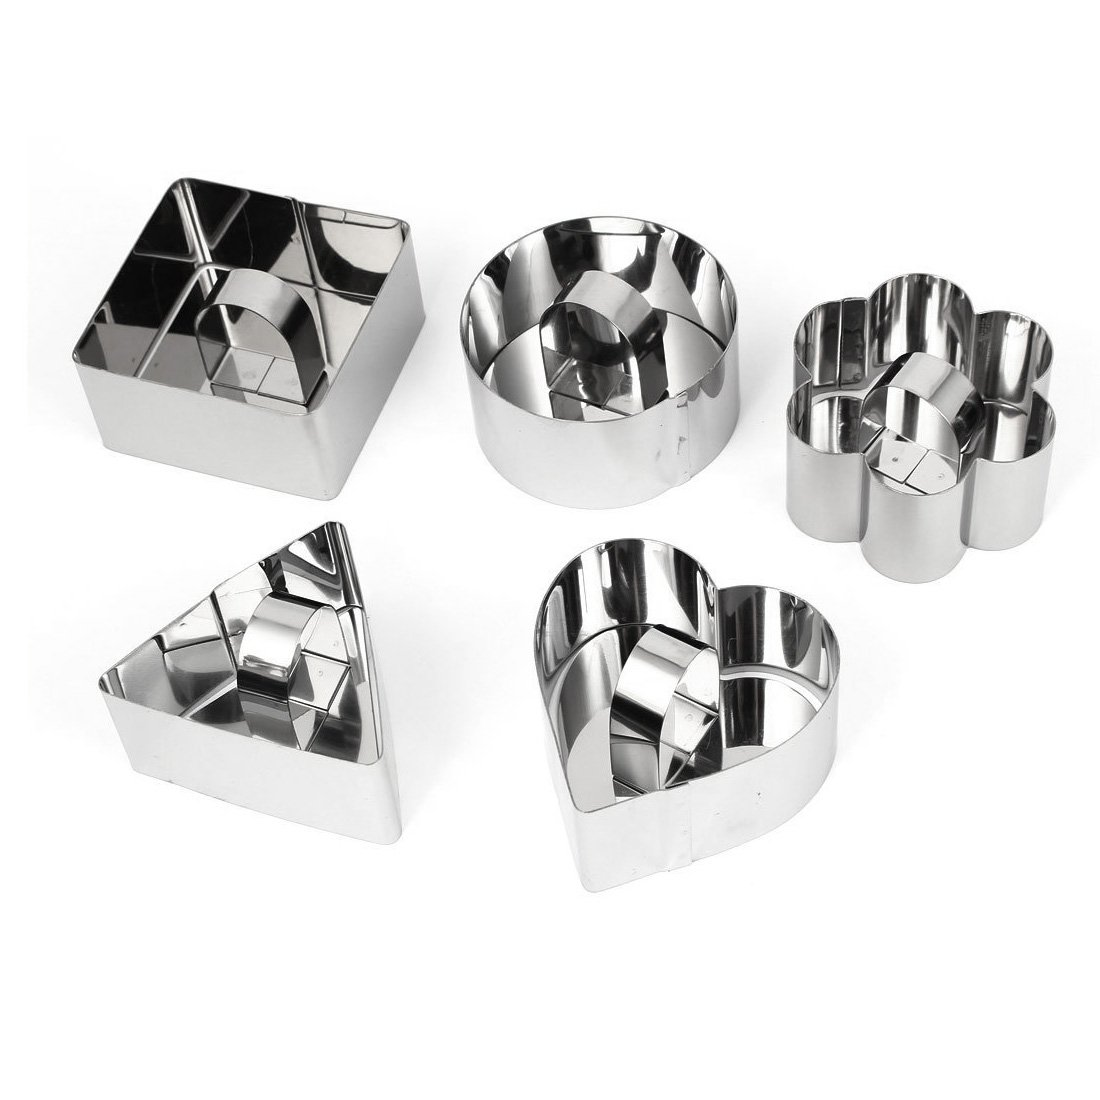 uxcell Stainless Steel DIY Small Mousse Ring Lamy Cheese Cake Mold Food Moulding Tools (5 in 1)